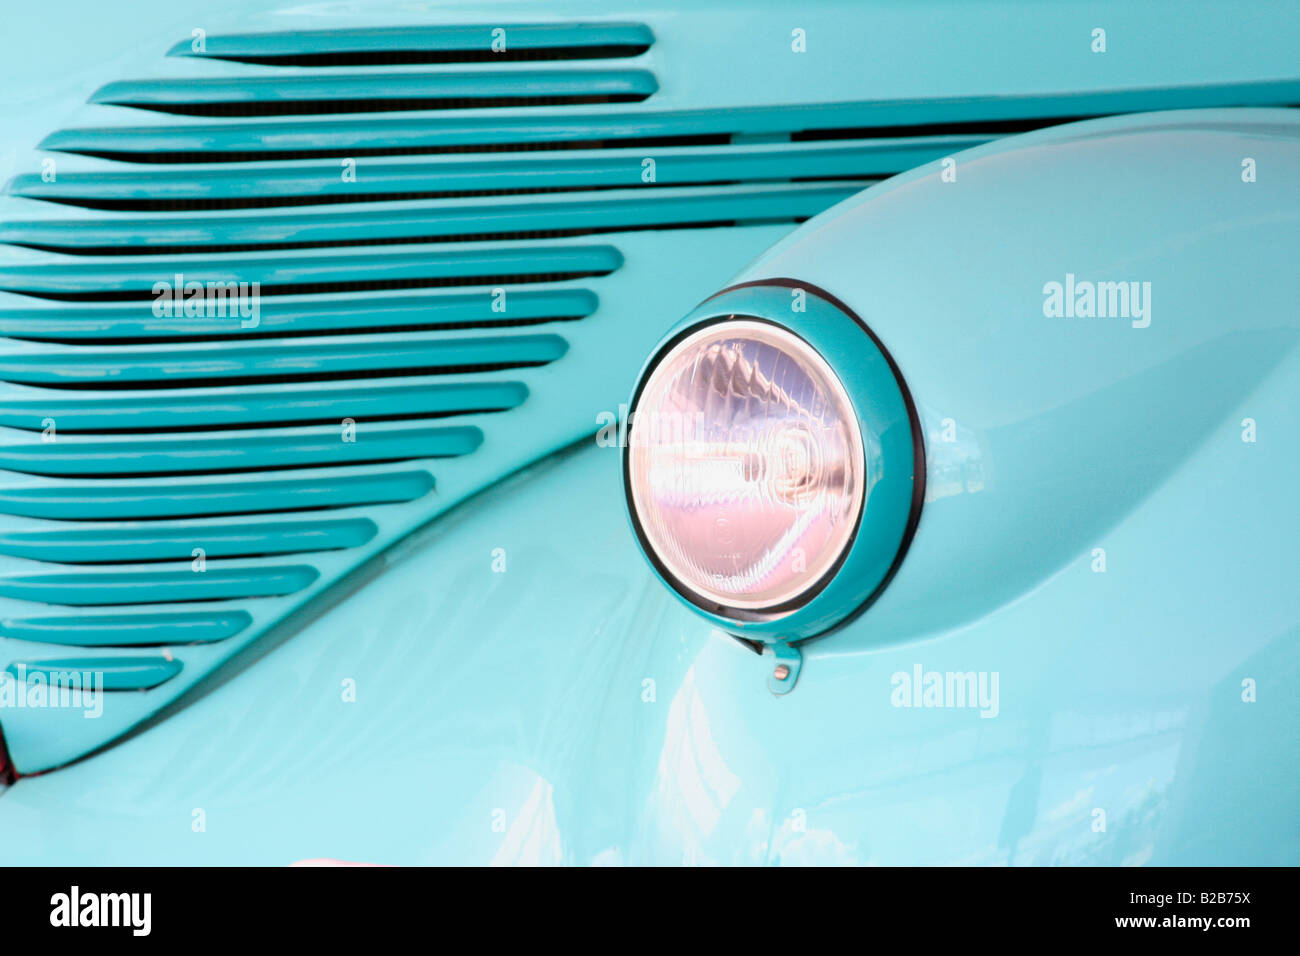 Vintage car headlight - Stock Image